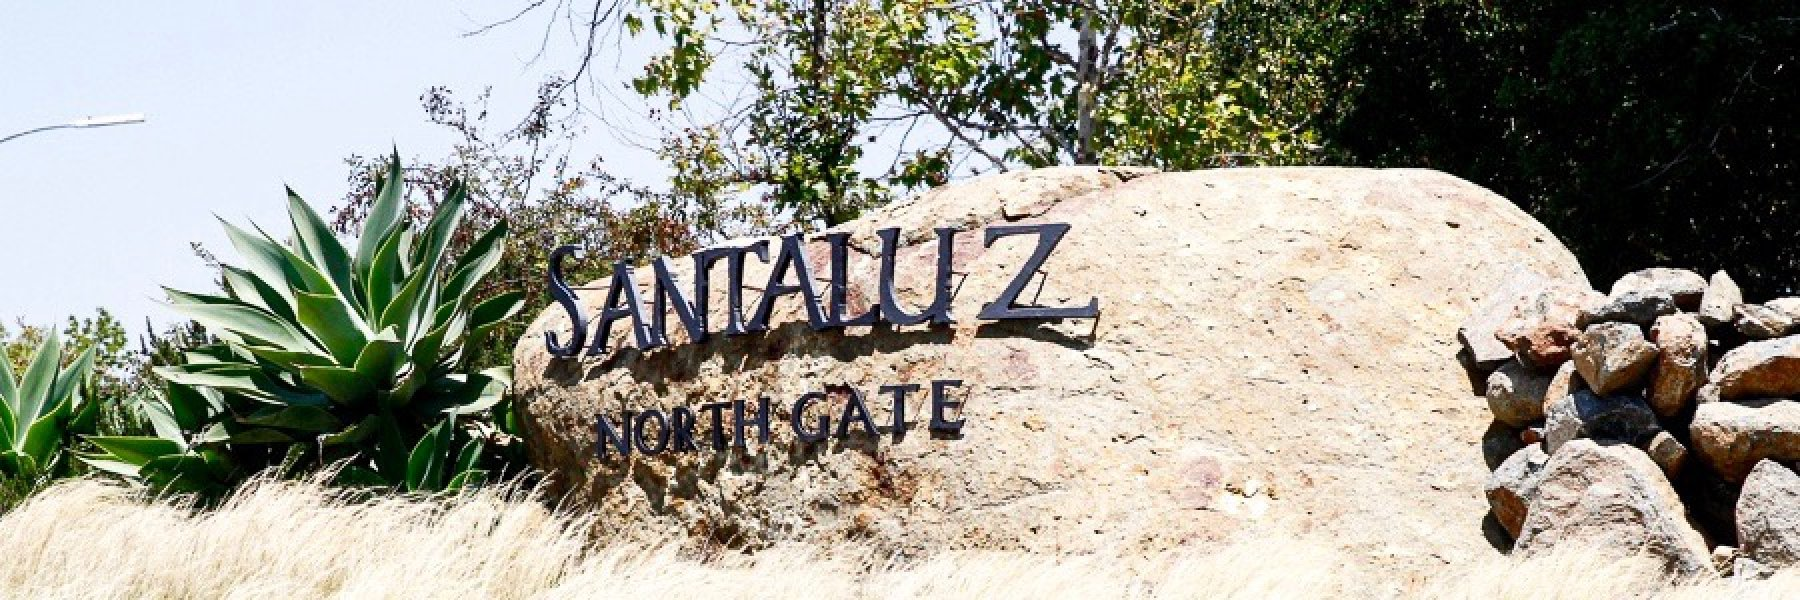 Santaluz is a community of homes in San Diego California